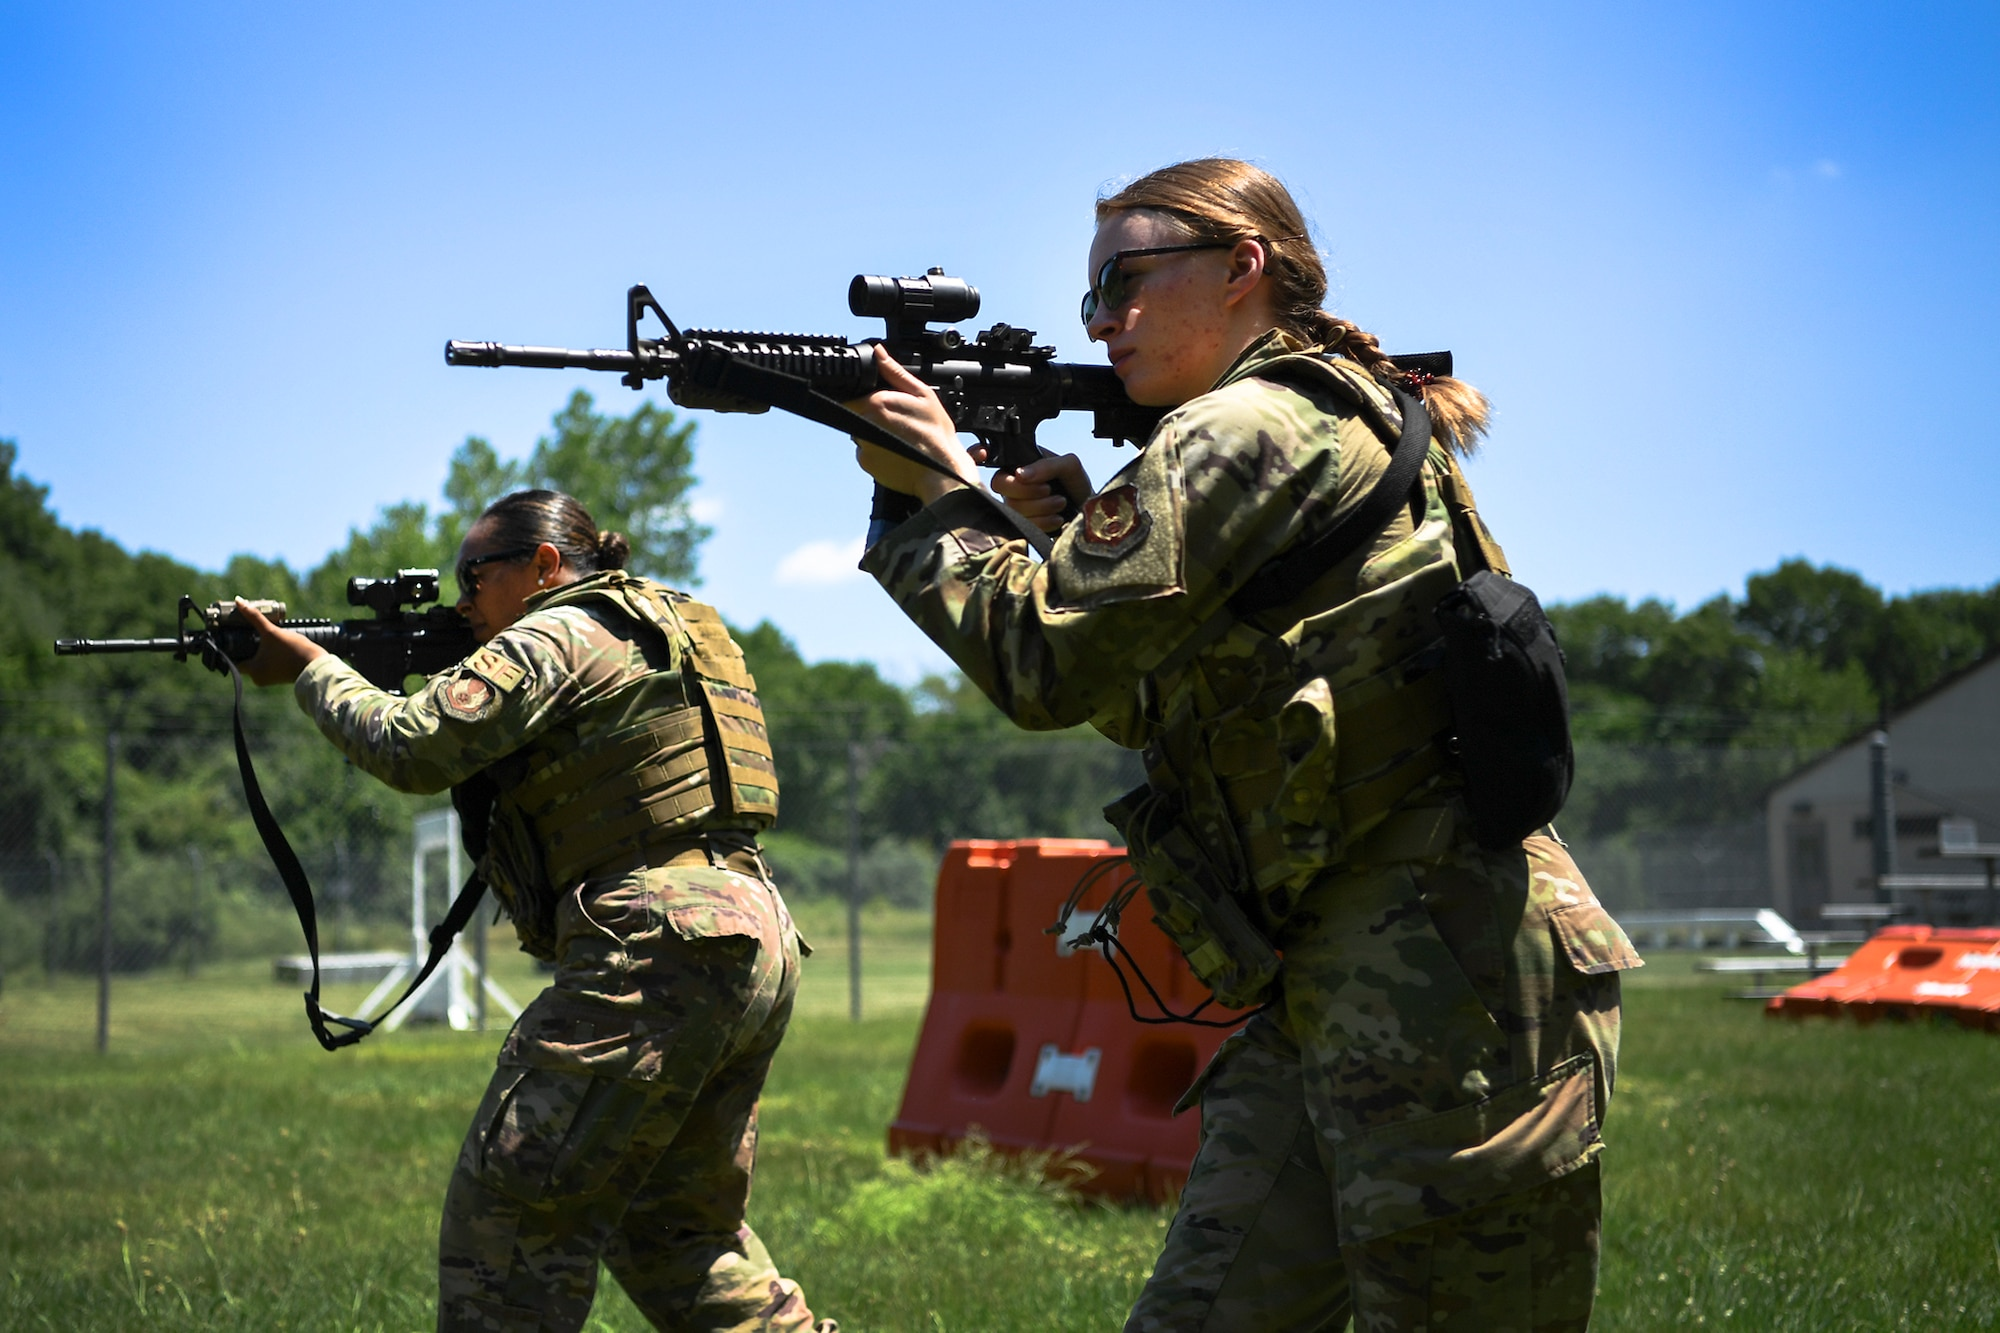 Senior Airman Adrianna Williams, left, and Airman Madalyn Duke, 66th Security Forces Squadron entry controllers, wears female body armor during a shoot, communicate, and move training at Hanscom Air Force Base, Mass., June 29.  The newest issue of body armor was designed specifically to fit females during combat and contingency operations. (U.S. Air Force photo by Lauren Russell)